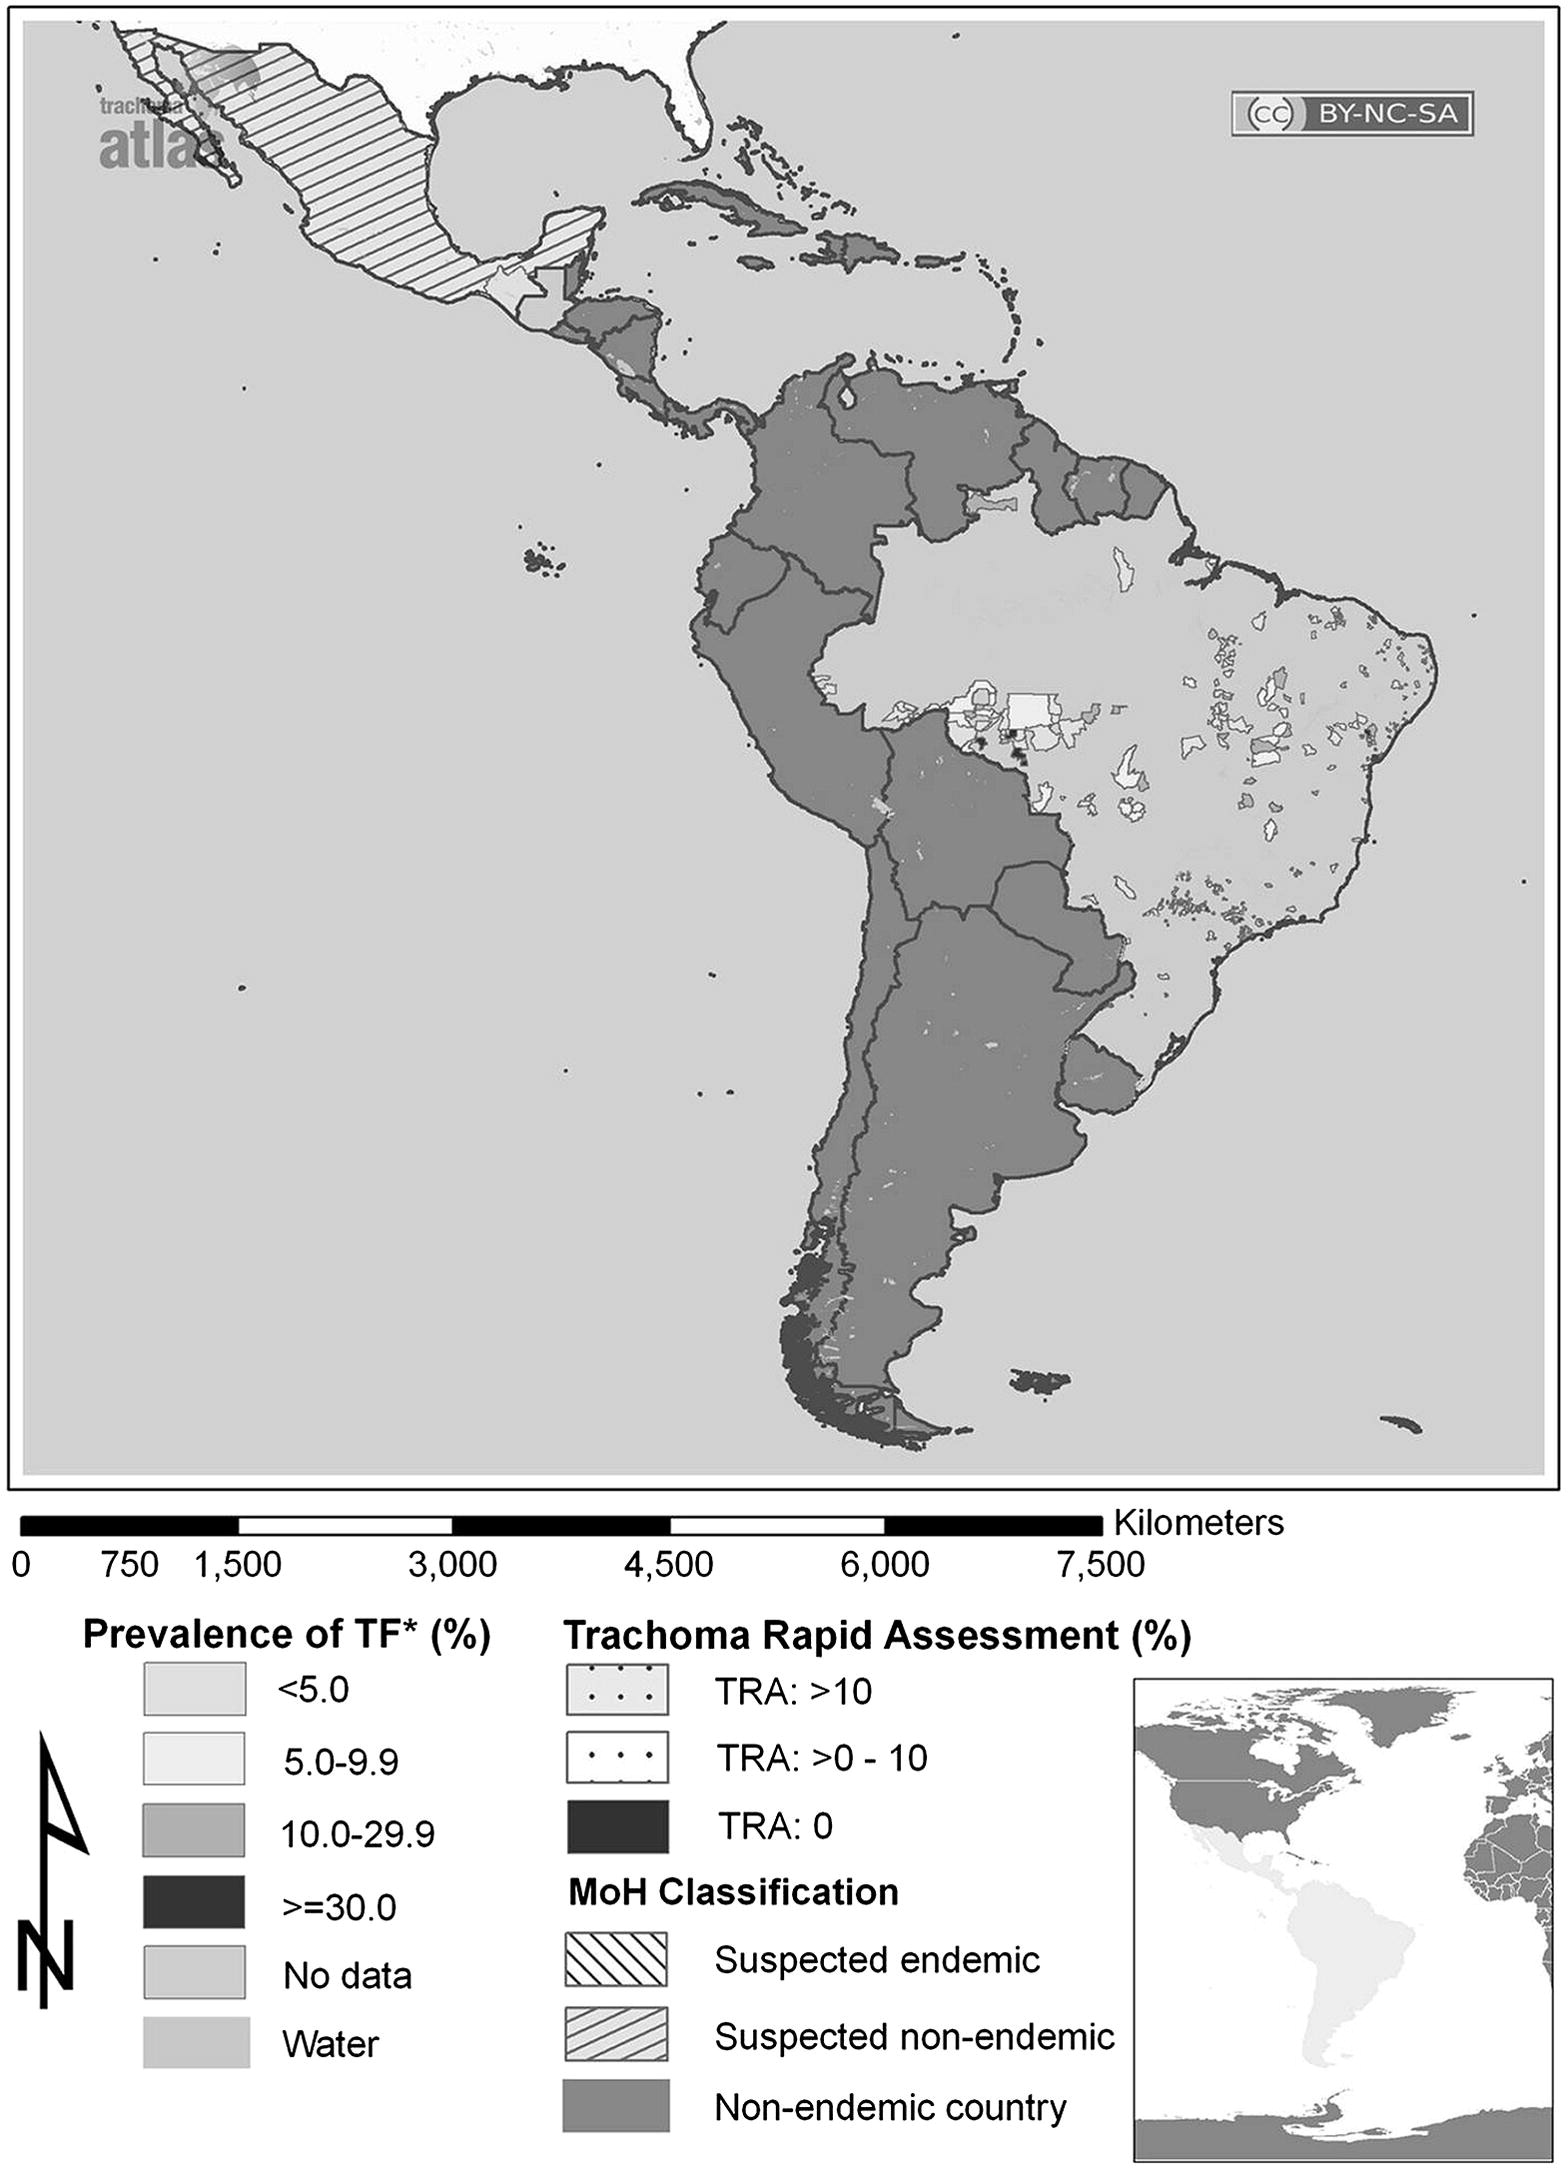 onchocerciasis in latin america Towards the elimination of onchocerciasis of human onchocerciasis in latin america towards the elimination of onchocerciasis in latin.